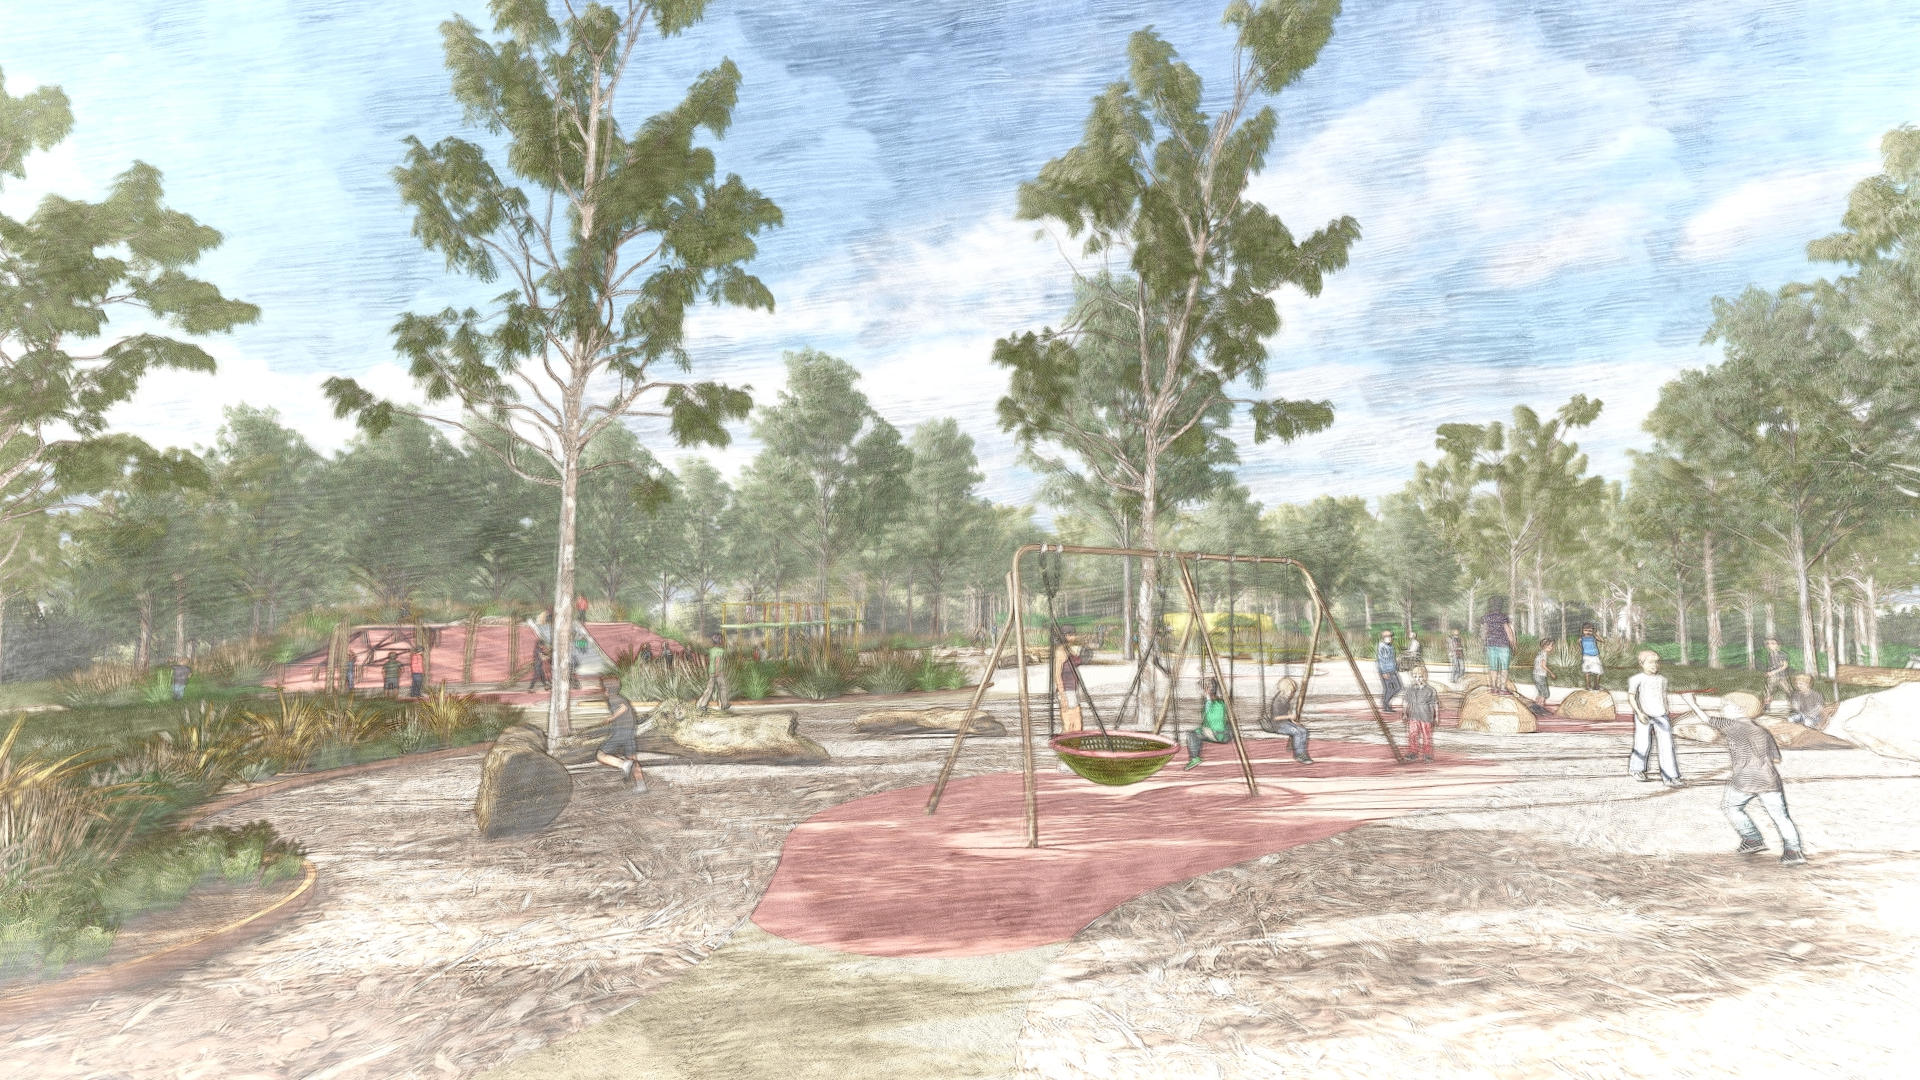 Net swing in foreground with tall eucalypts and children running. Boulders and garden areas.